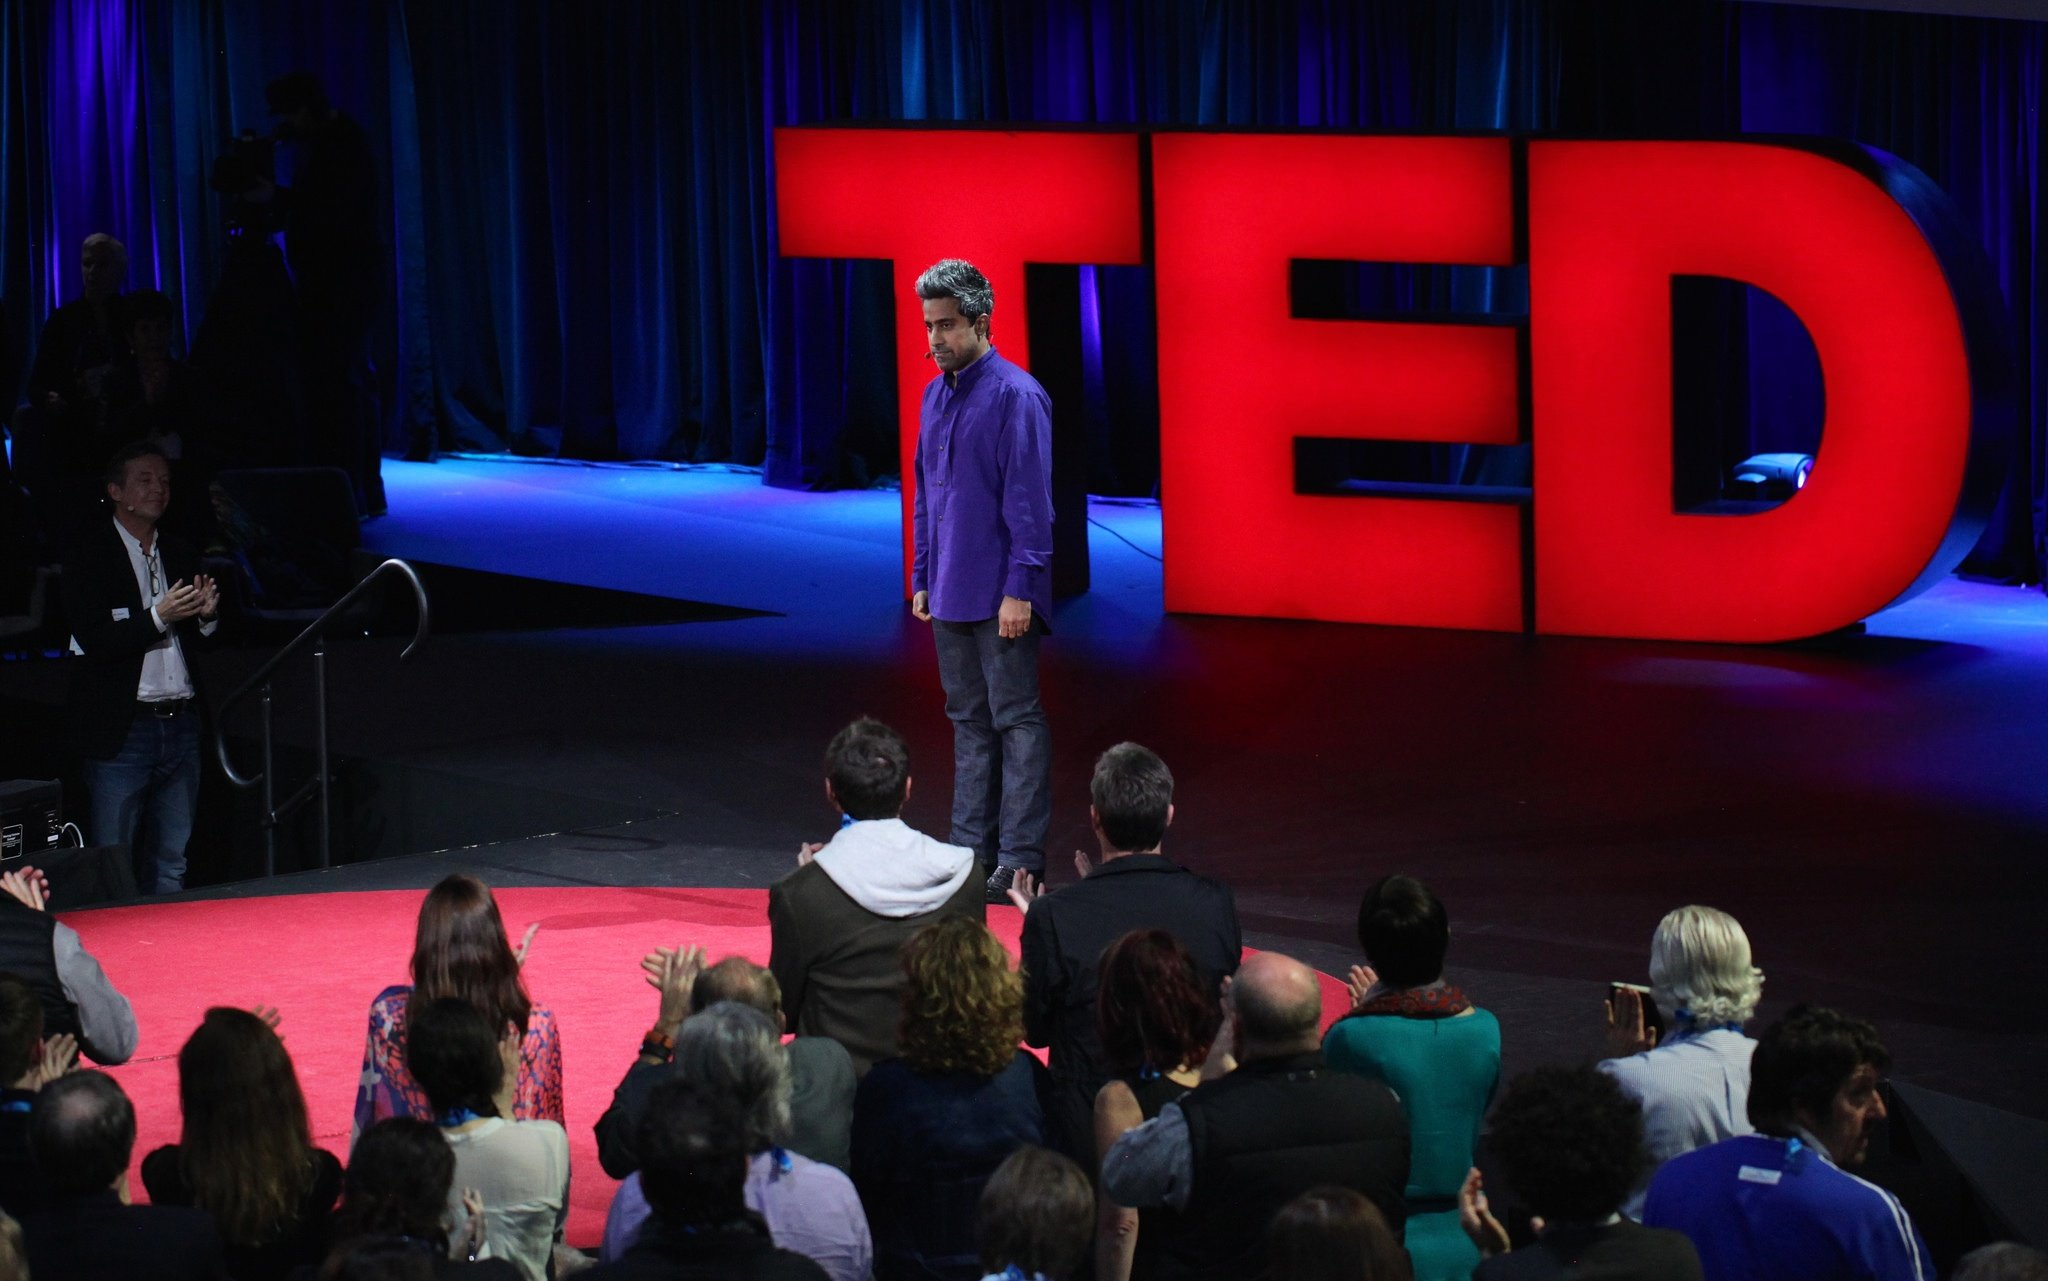 HubSpot-Blog-TED-Talks-Format-Content-Marketing-A-standing-ovation-for-Anands-harrowing-tale-of-two-Americas-and-true-nobility-von-Steve-Jurvetson-CC-BY-2.0.jpg